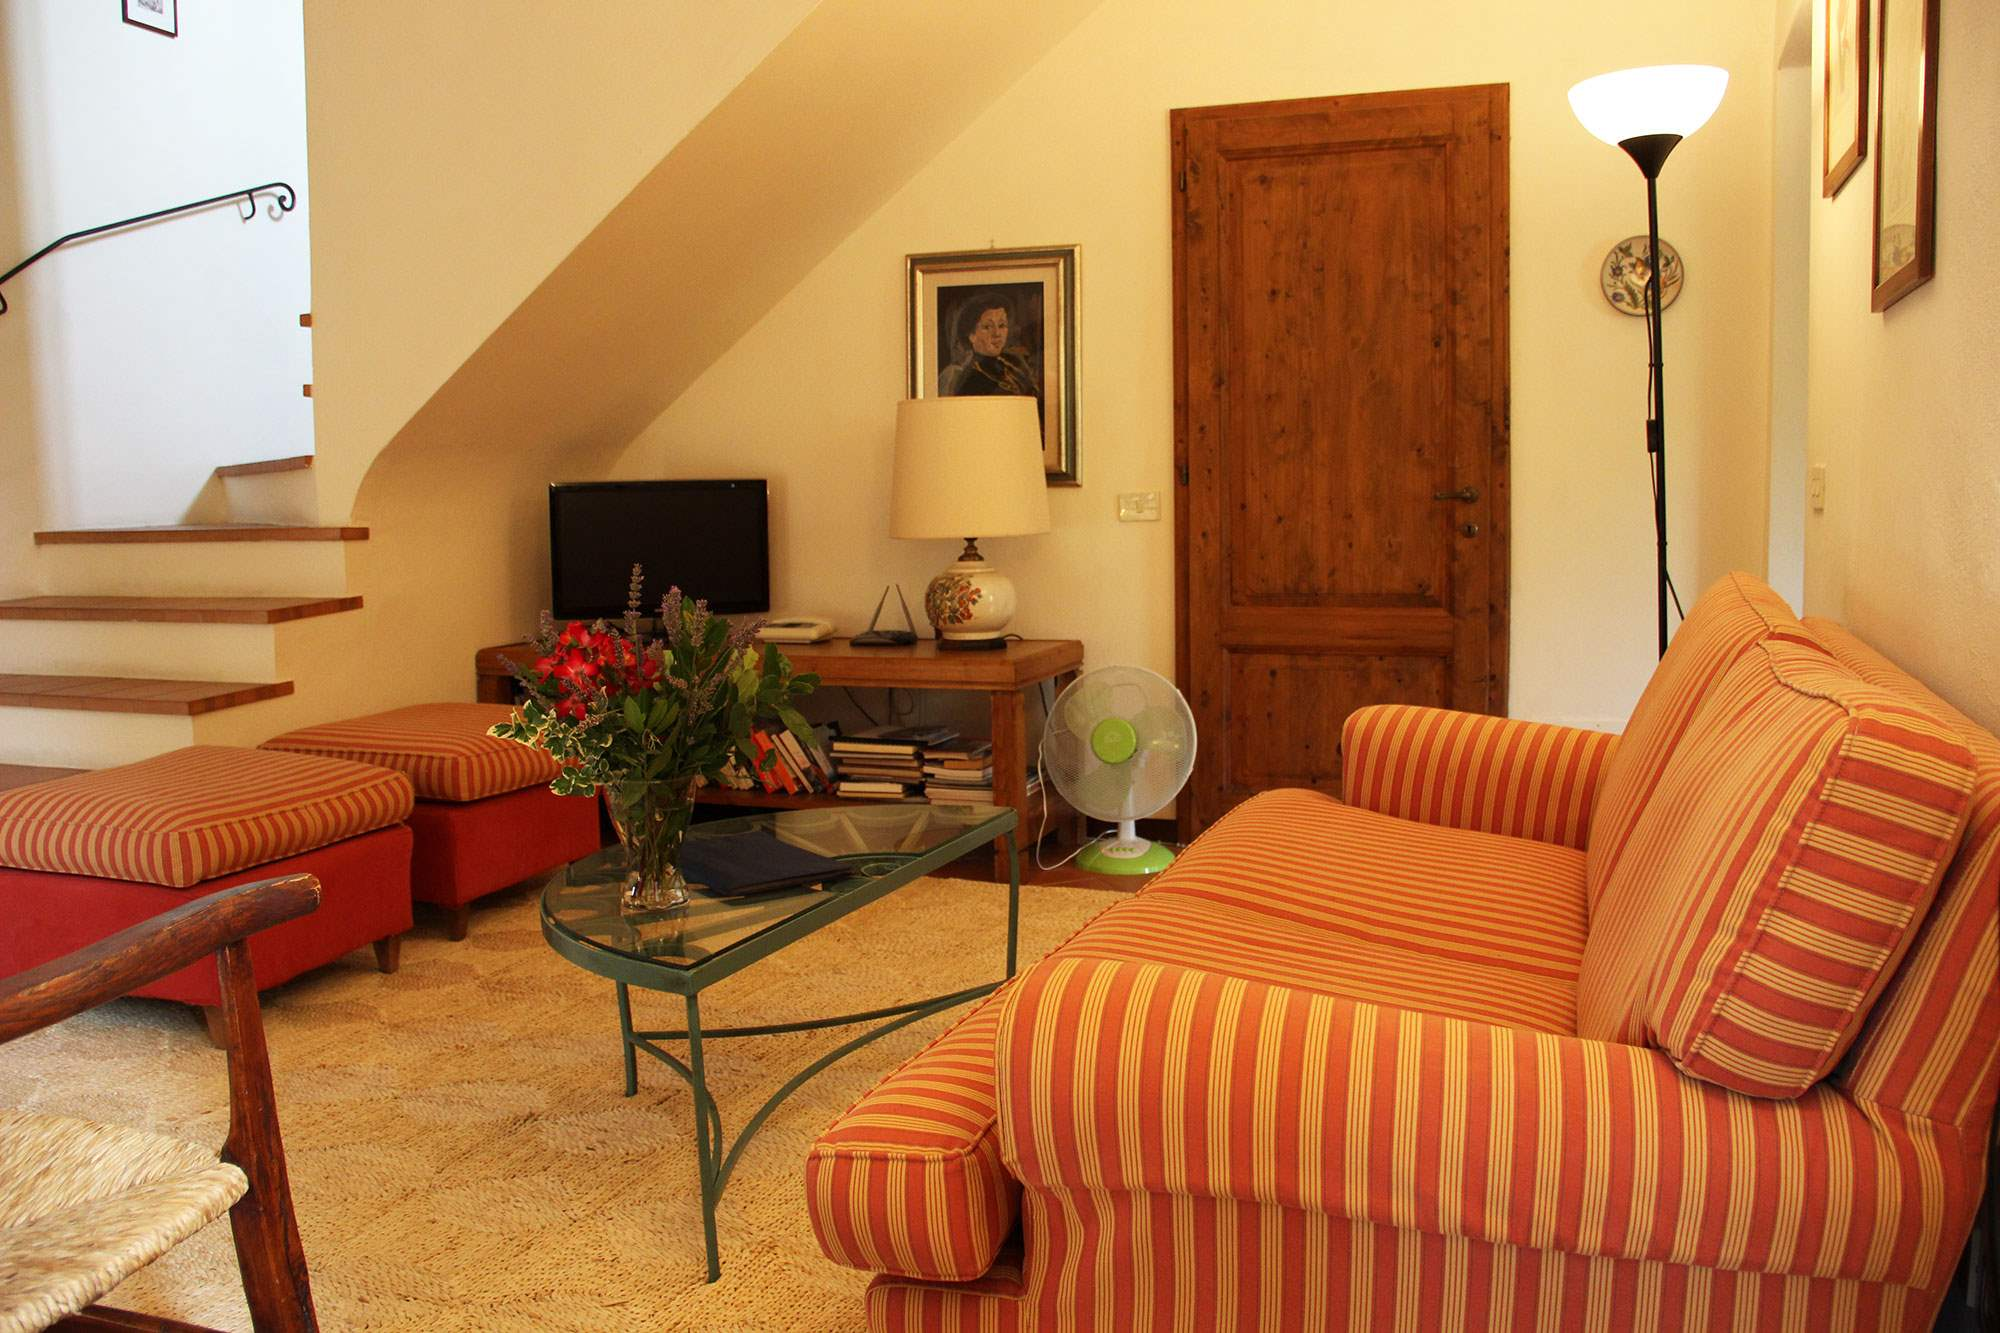 Casa Ferruzzi 2, 3 bedroom apartment in Chianti & Countryside, Tuscany Photo #5